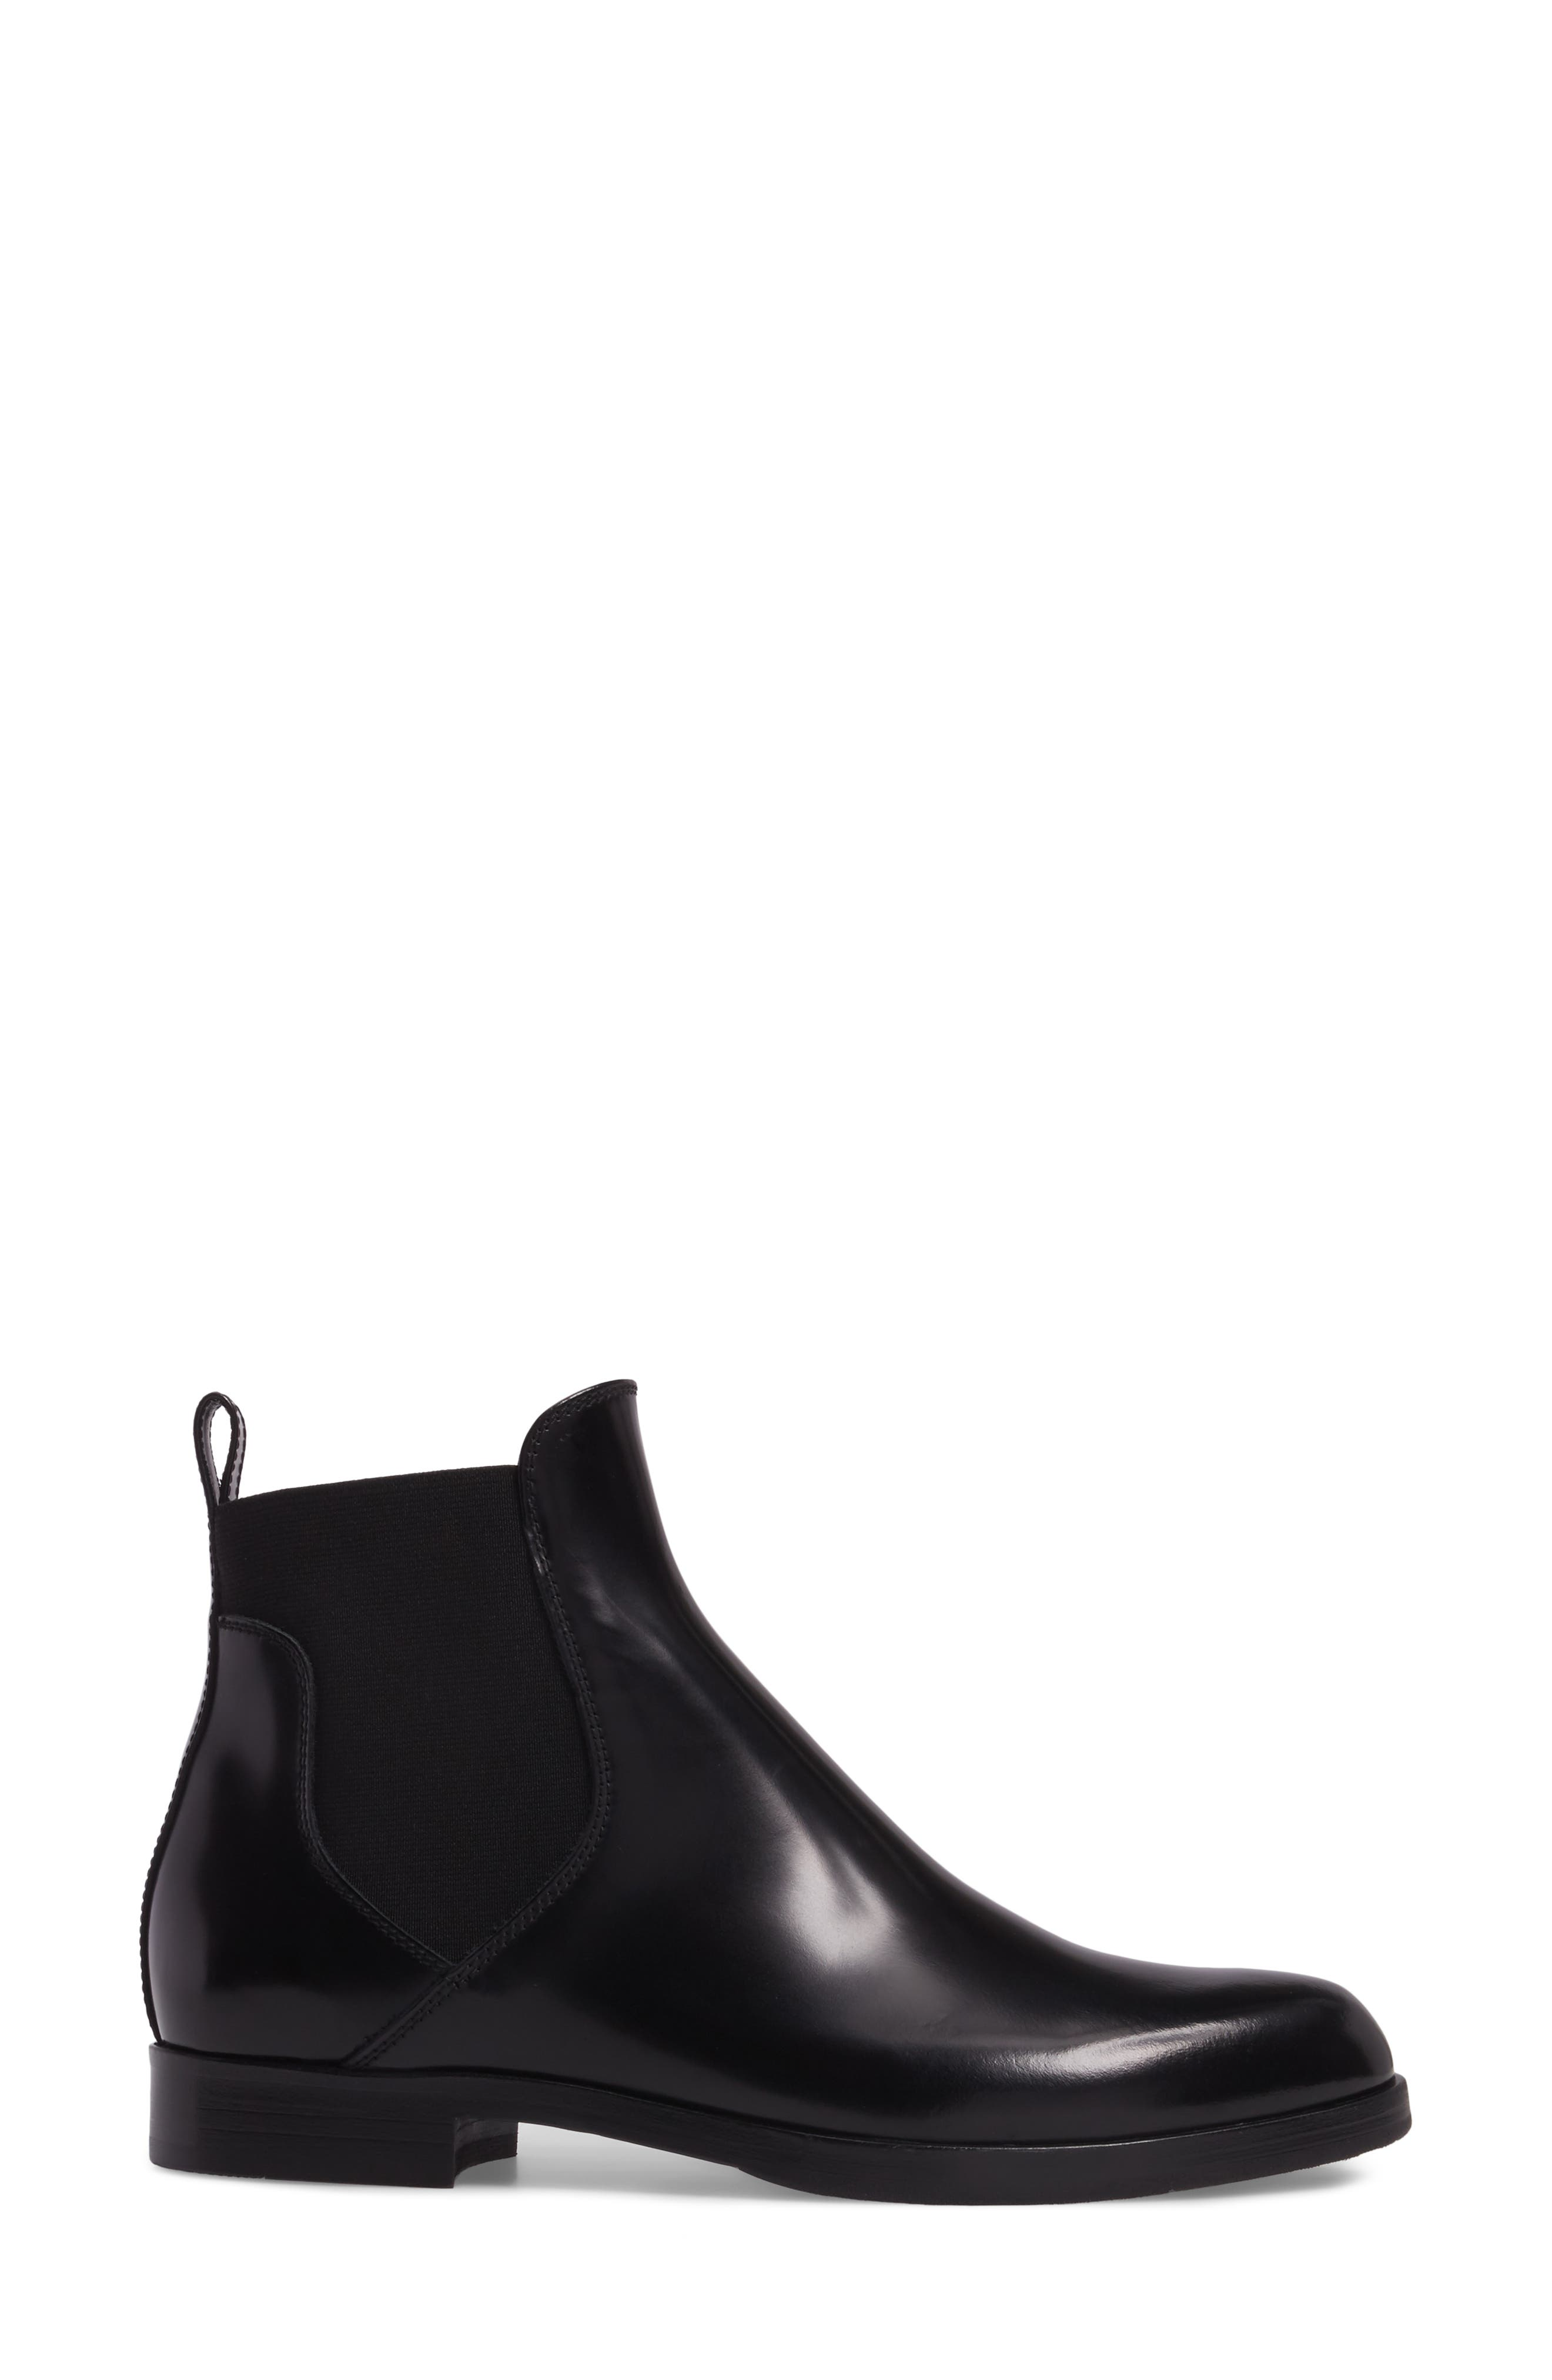 Gored Bootie,                             Alternate thumbnail 3, color,                             Black Leather